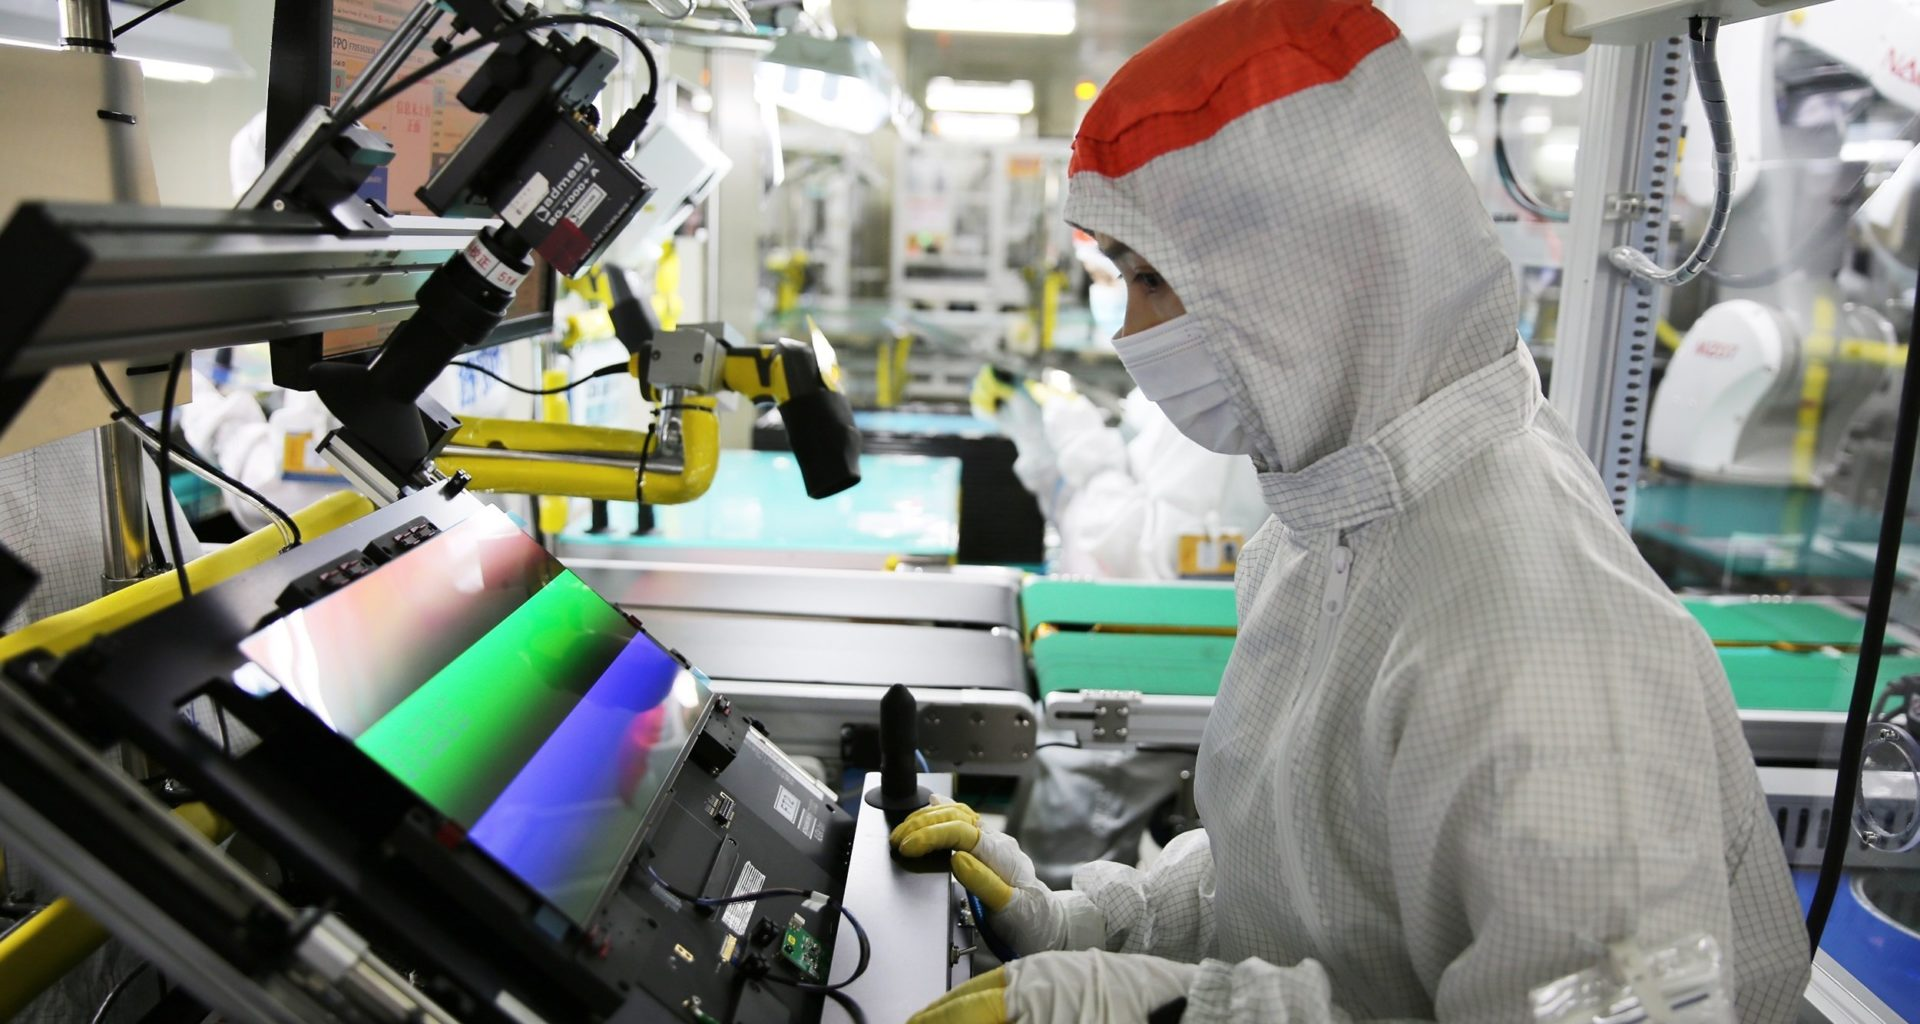 Samsung Display to set up a new production line in South Korea that will be responsible for OLED panels